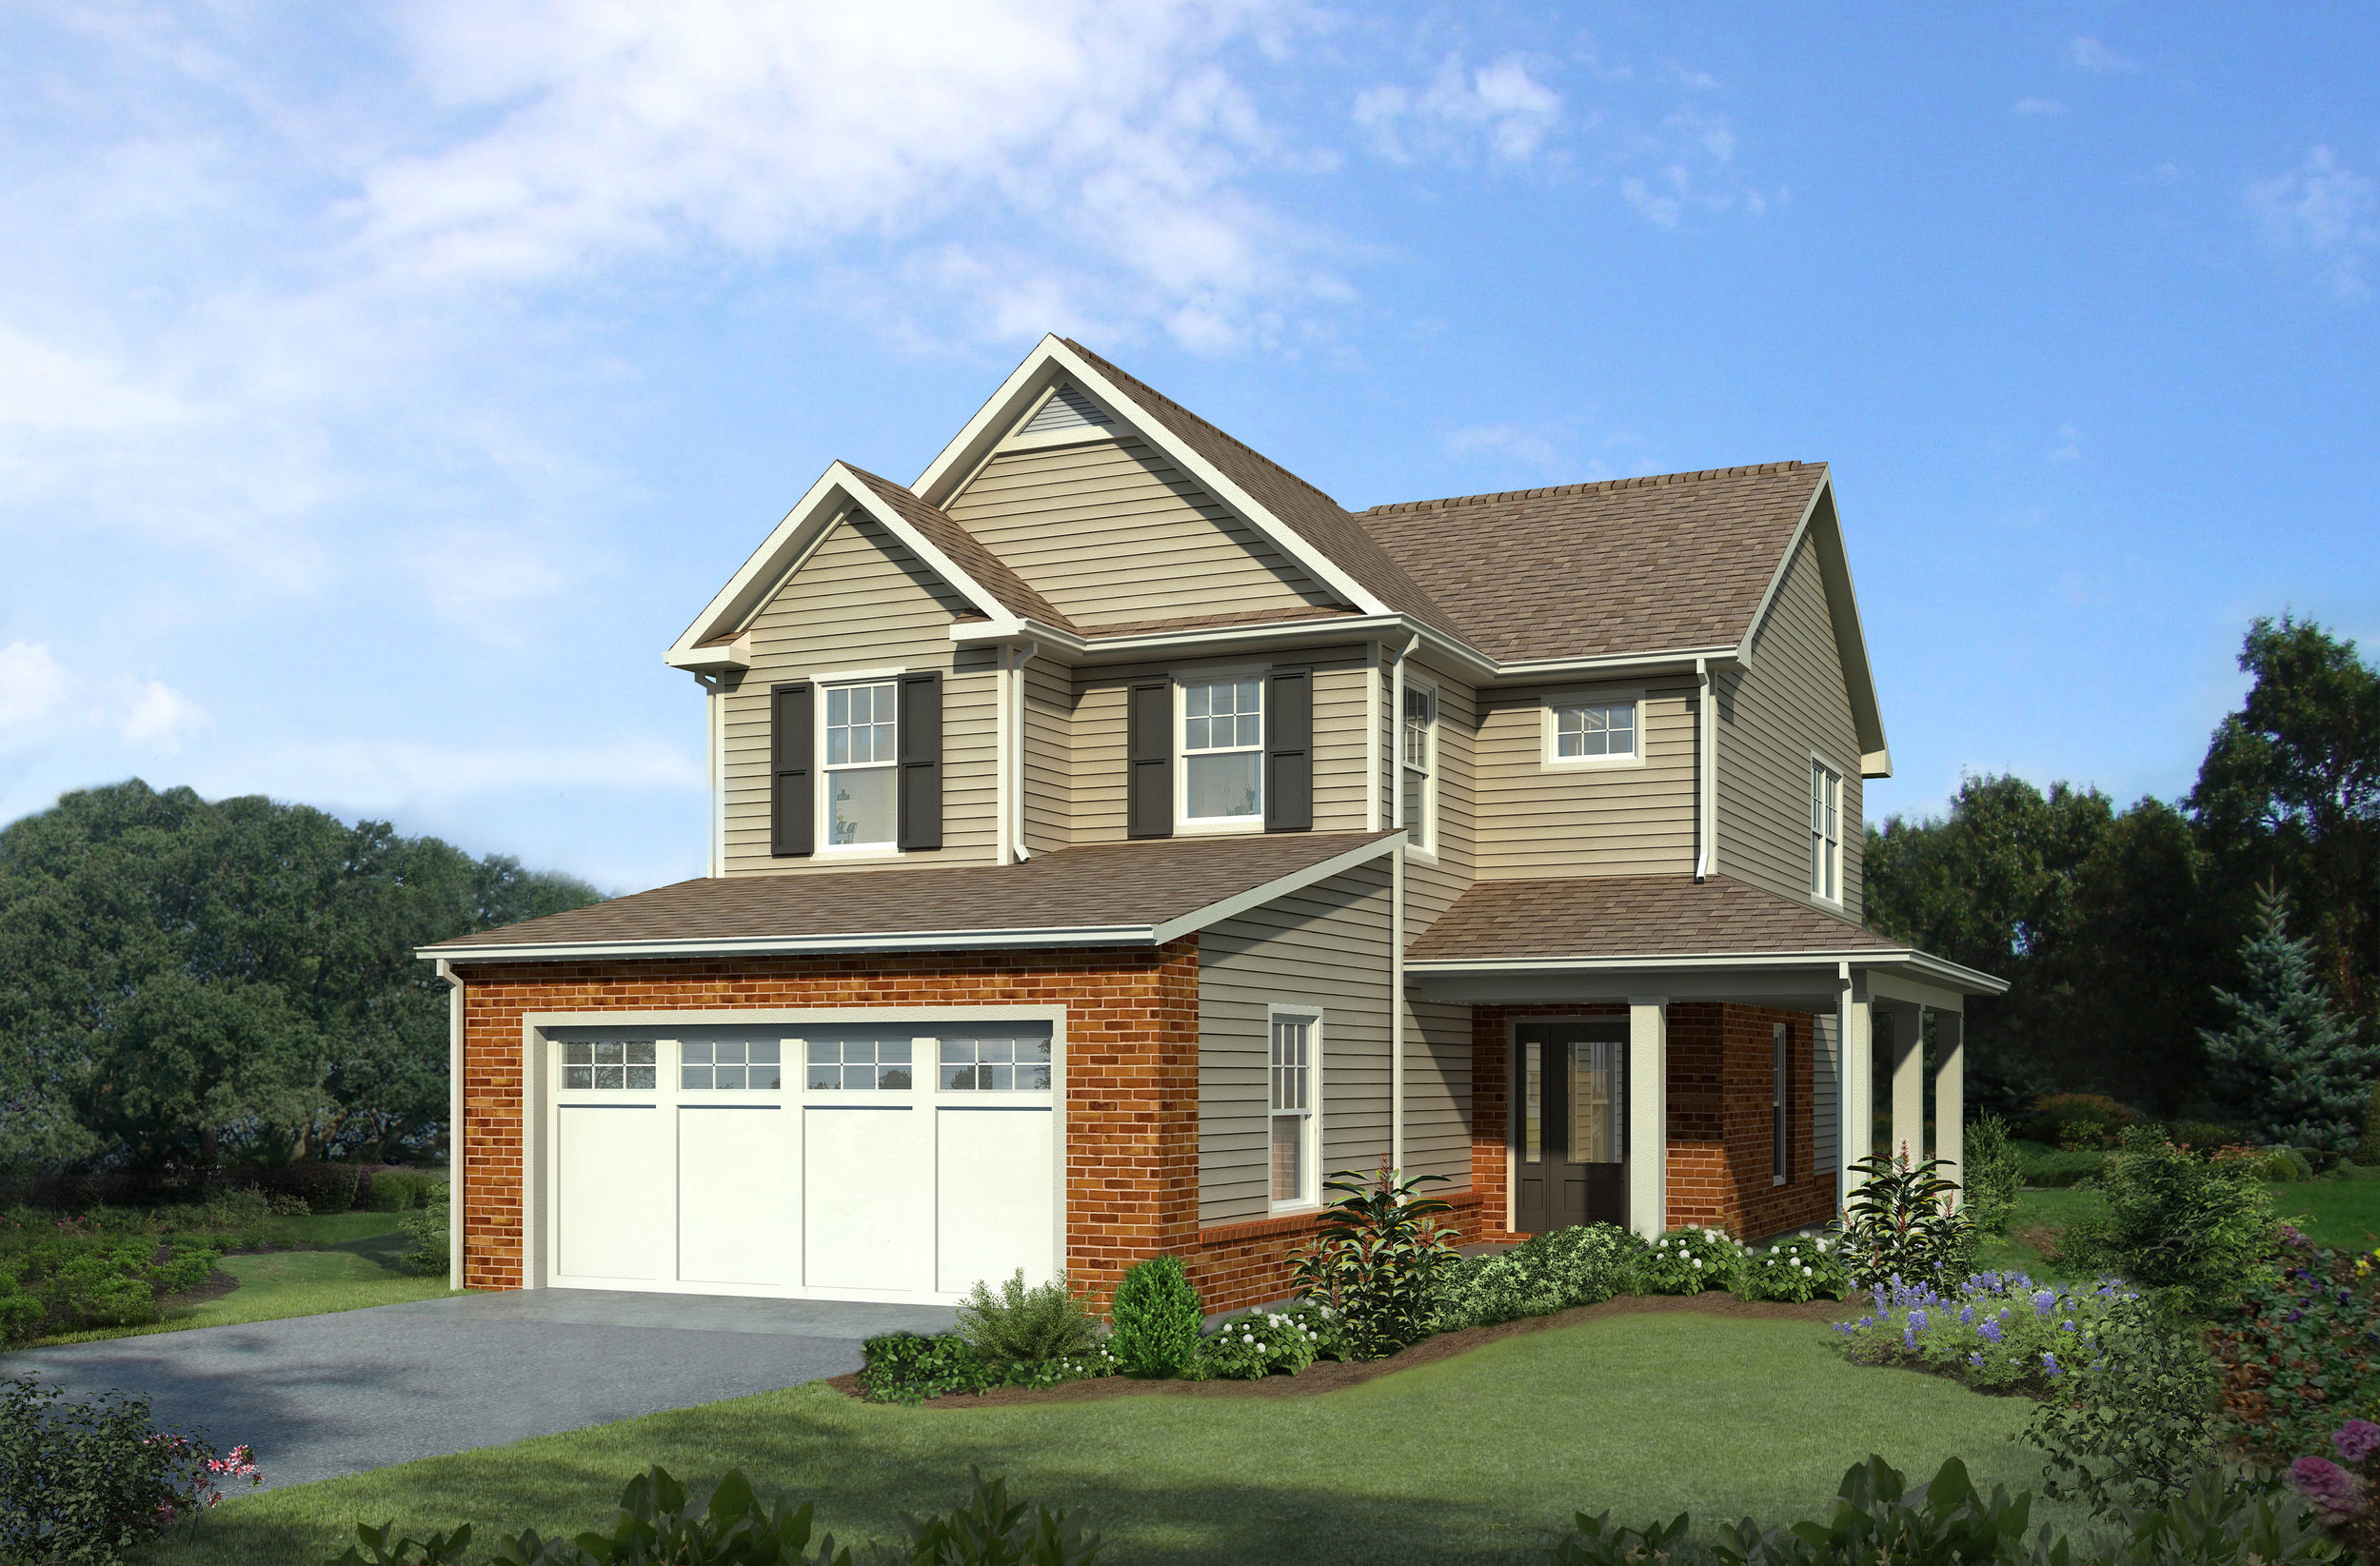 15 Kentwood Dr Architecture Rendering.jpg